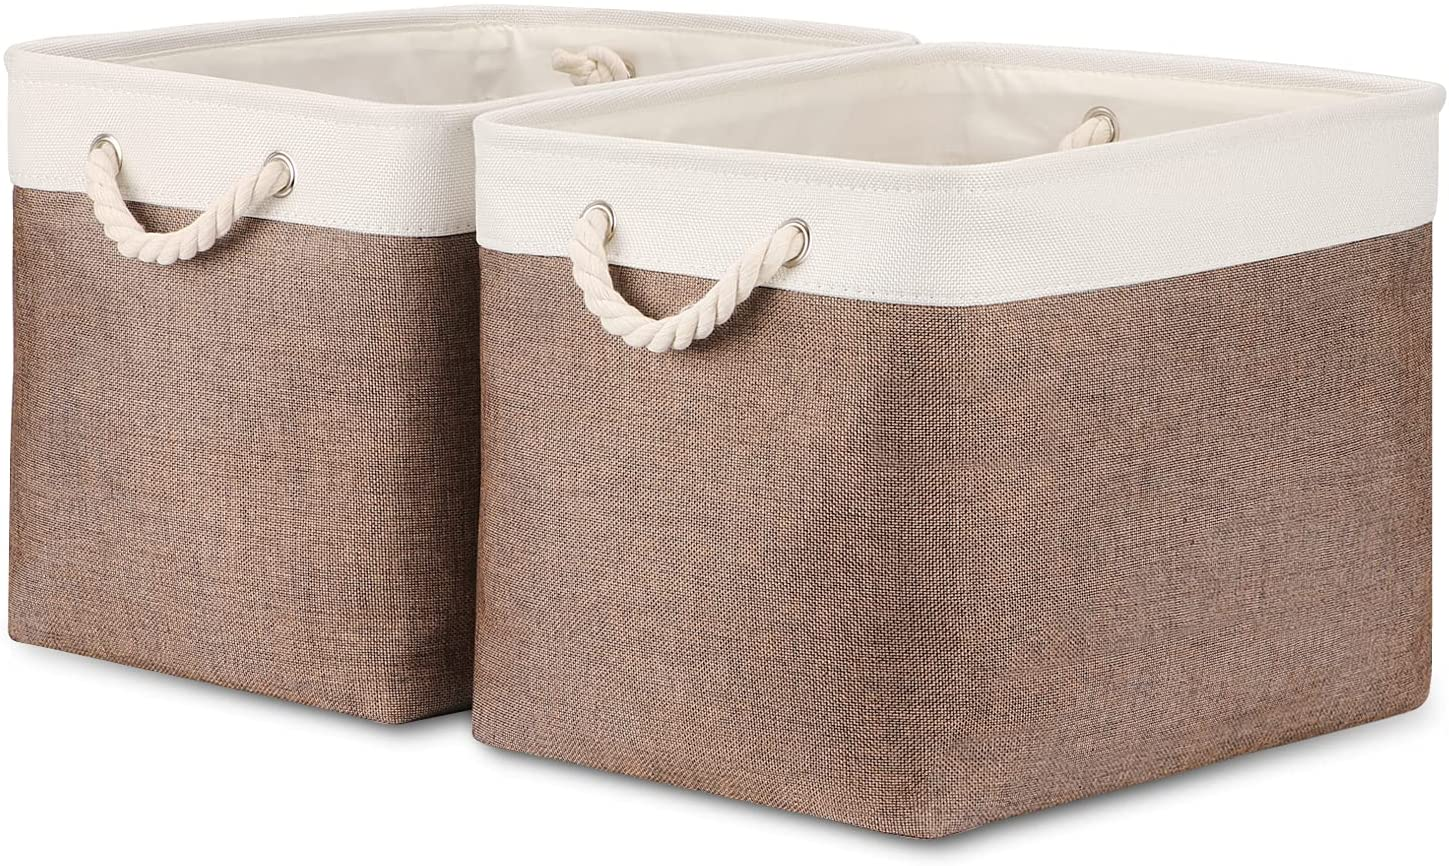 Super Special SALE Max 51% OFF held Bidtakay Large Storage Baskets with x 16